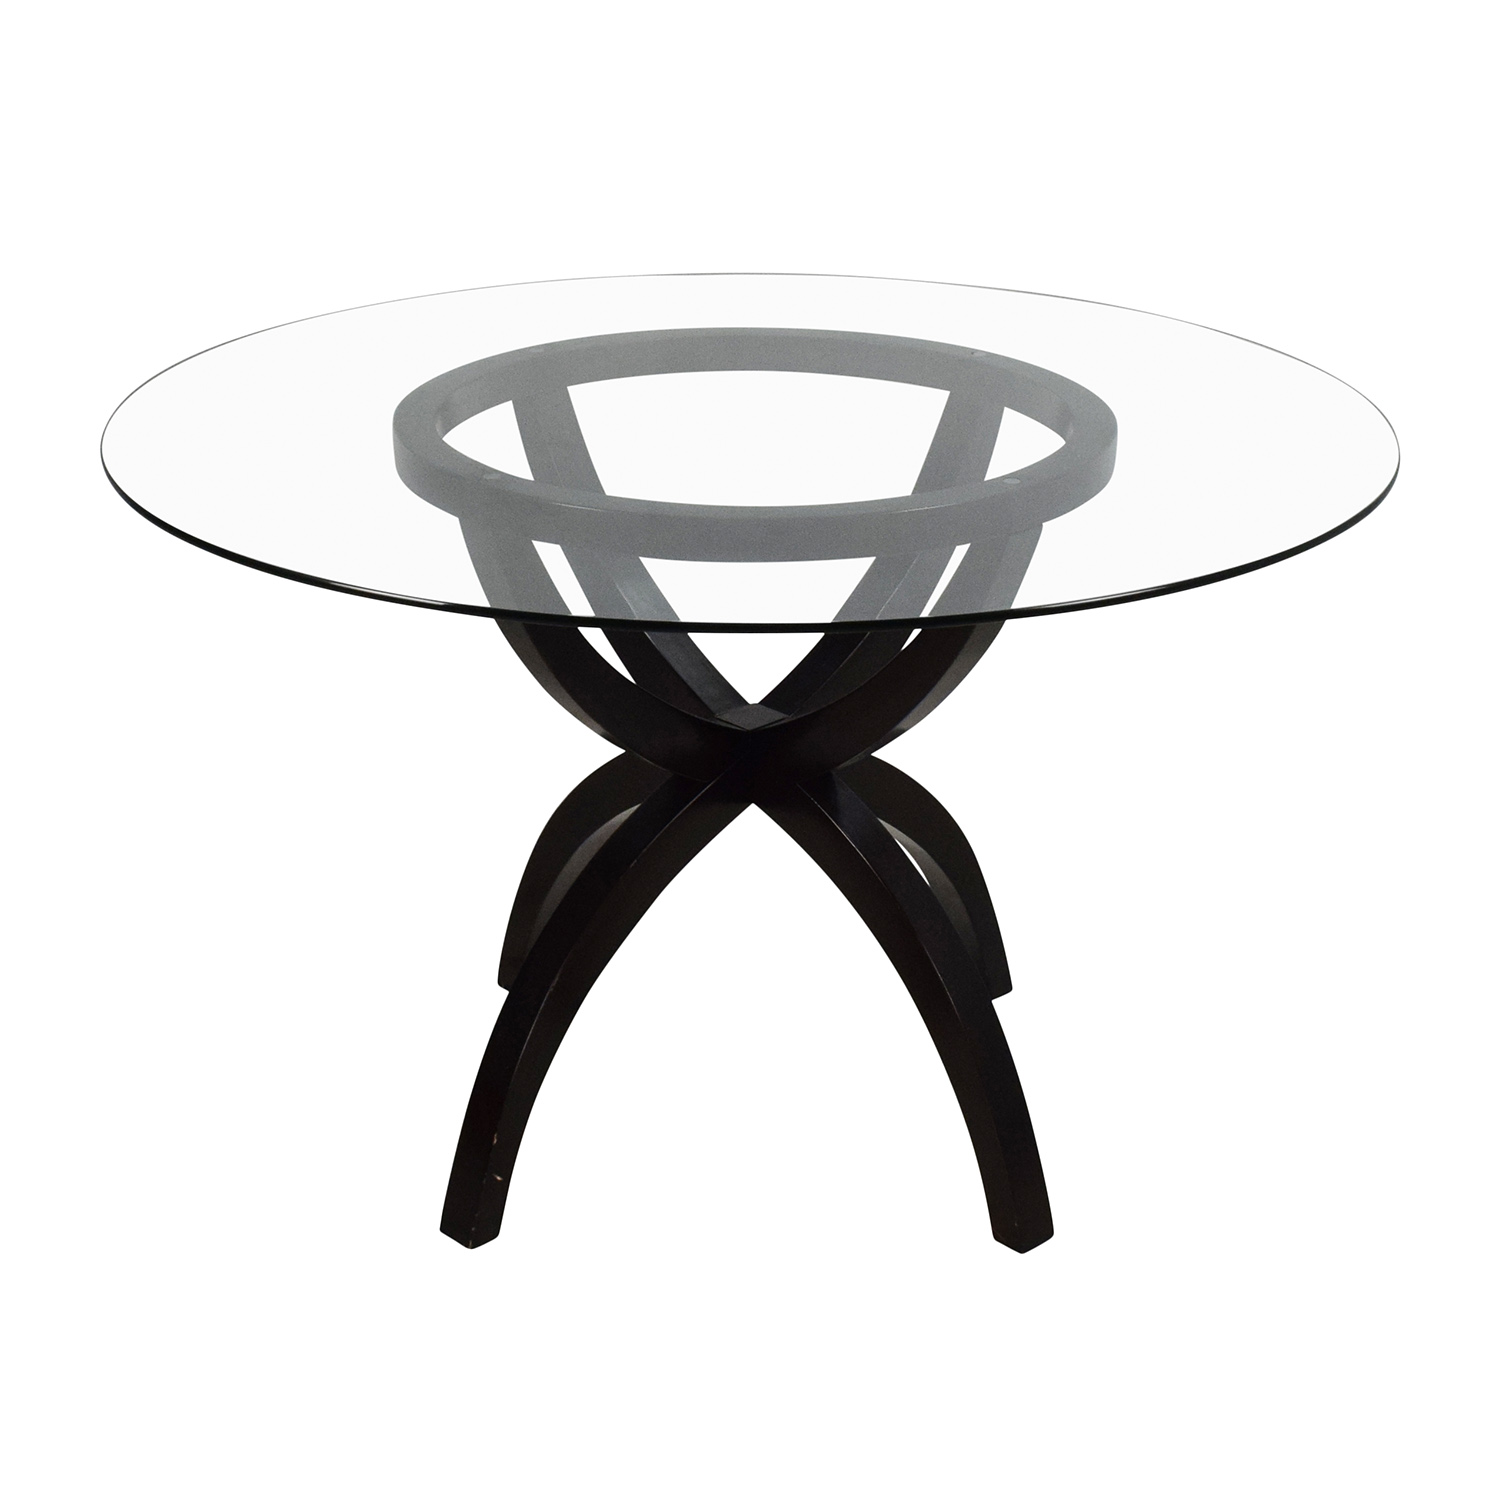 Circular Glass and Wood Dining Table / Dinner Tables